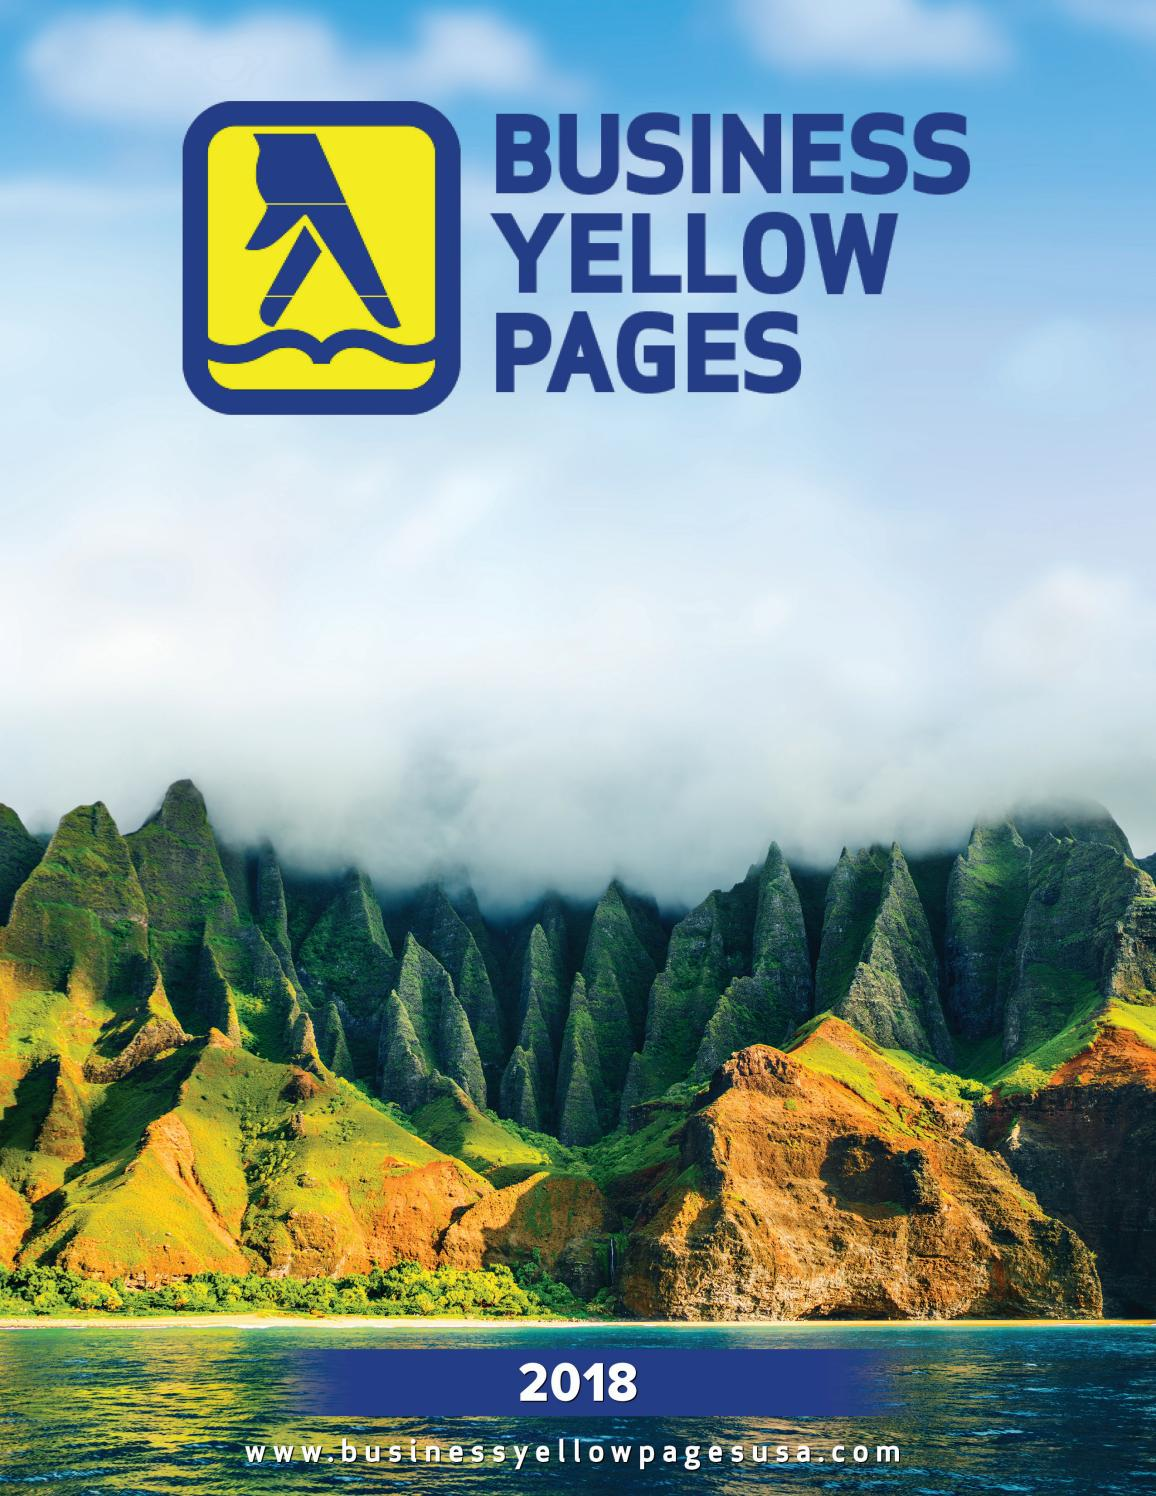 Business Yellow Pages USA 2018 by El Periodico U.S.A. - issuu